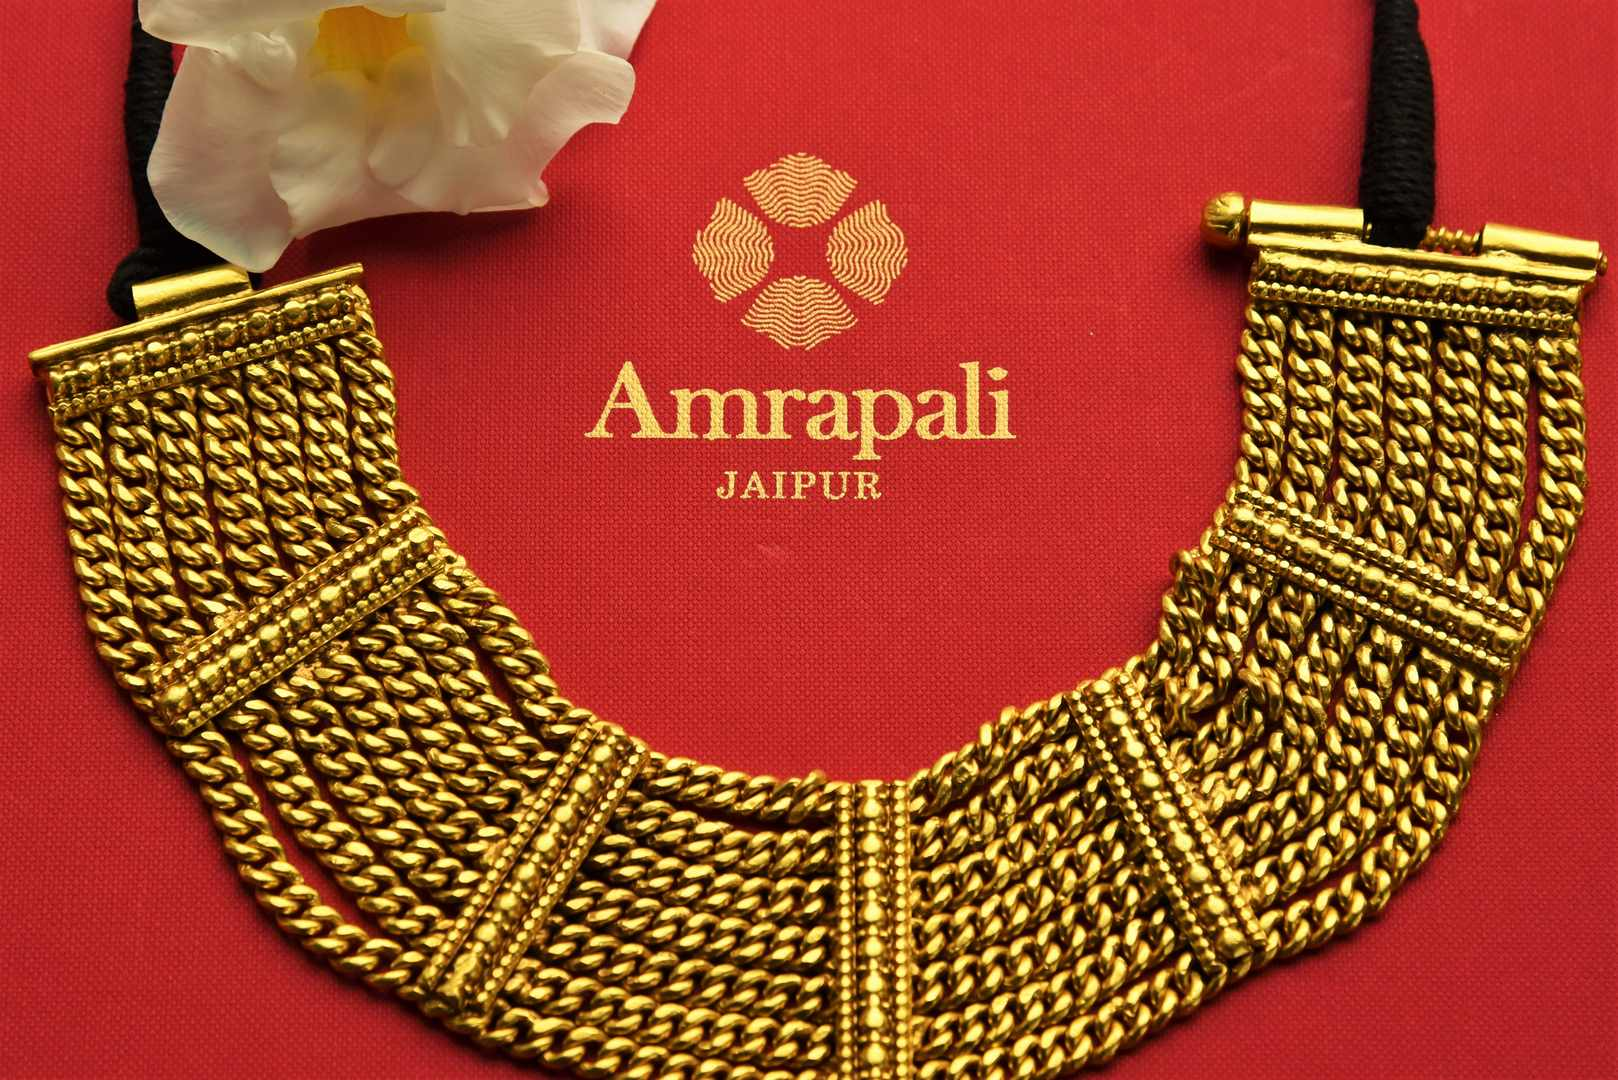 Buy Amrapali silver gold plated multi chain thread necklace online in USA. Pure Elegance fashion store brings exquisite range of Indian gold plated jewelry in USA. Shop online.-closeup